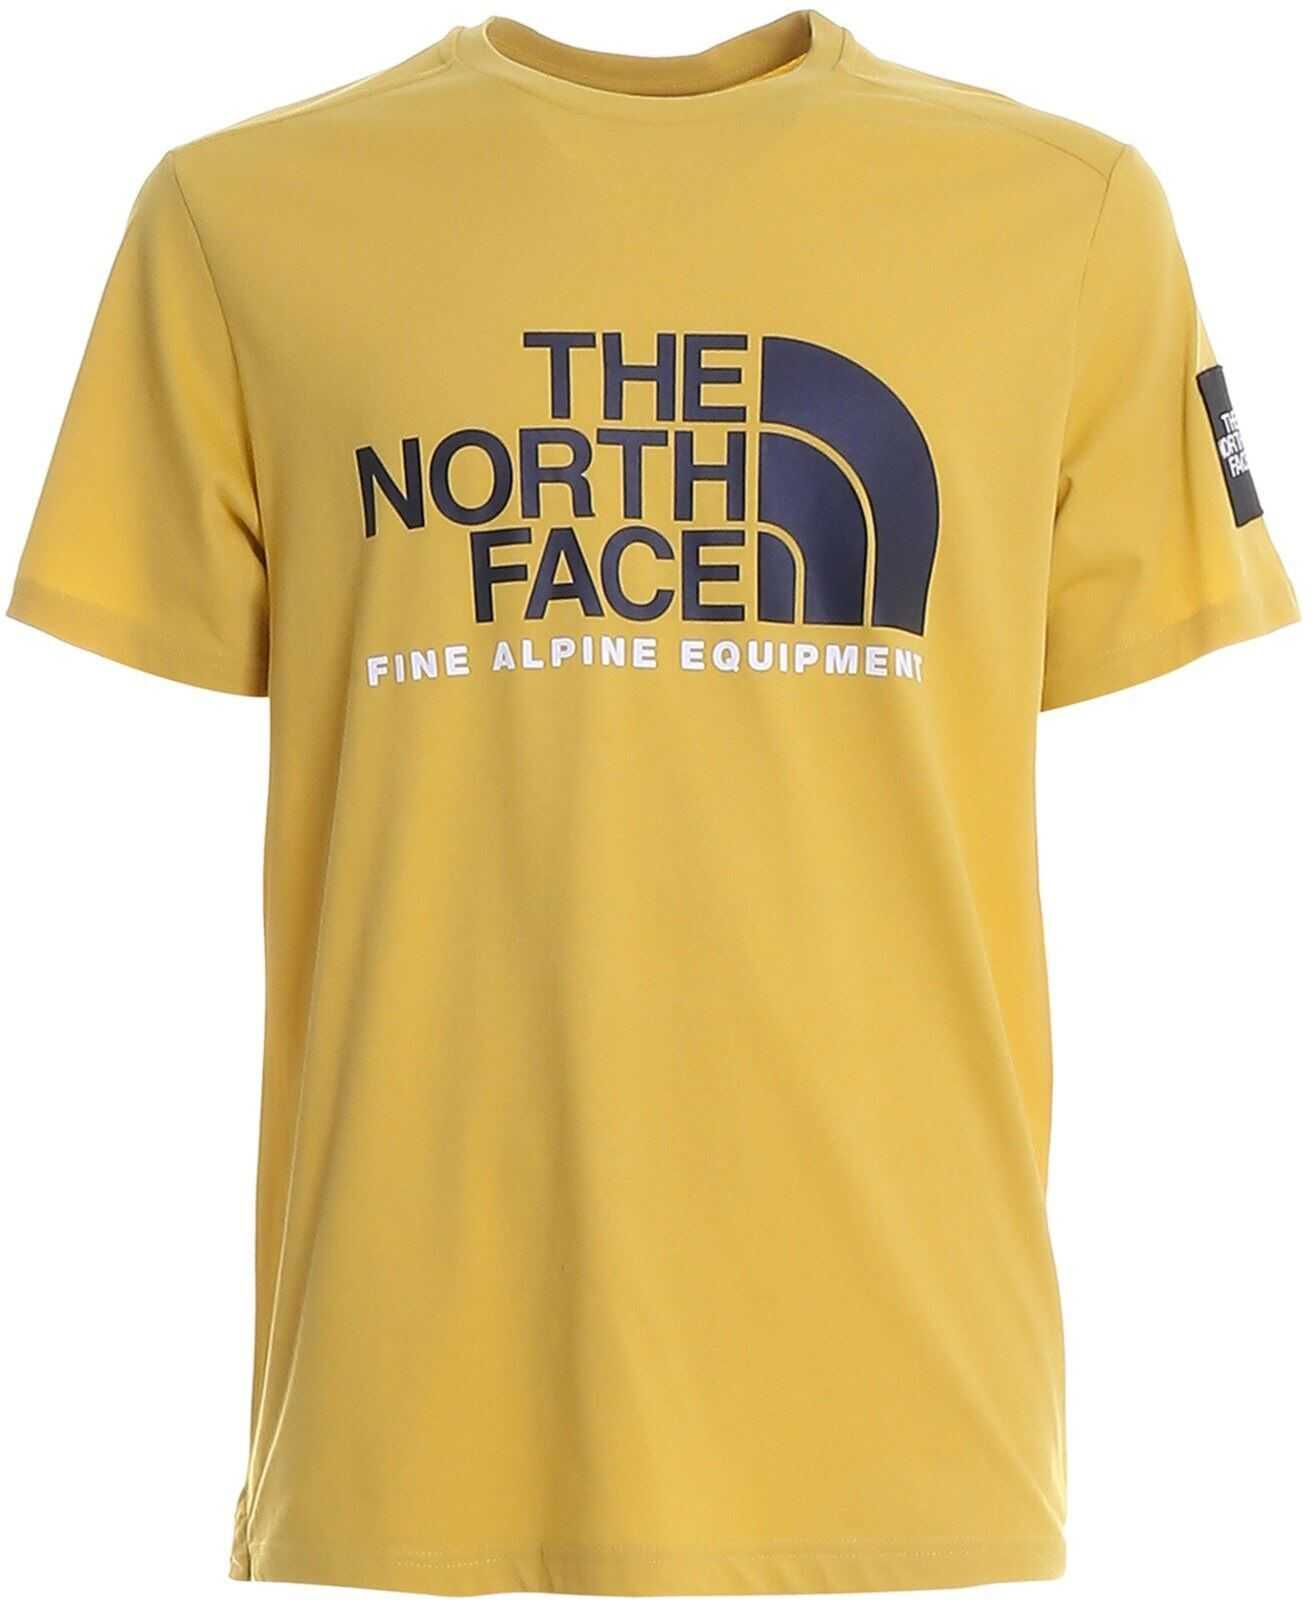 The North Face Fine Alpine Equipment Jersey T-Shirt Yellow